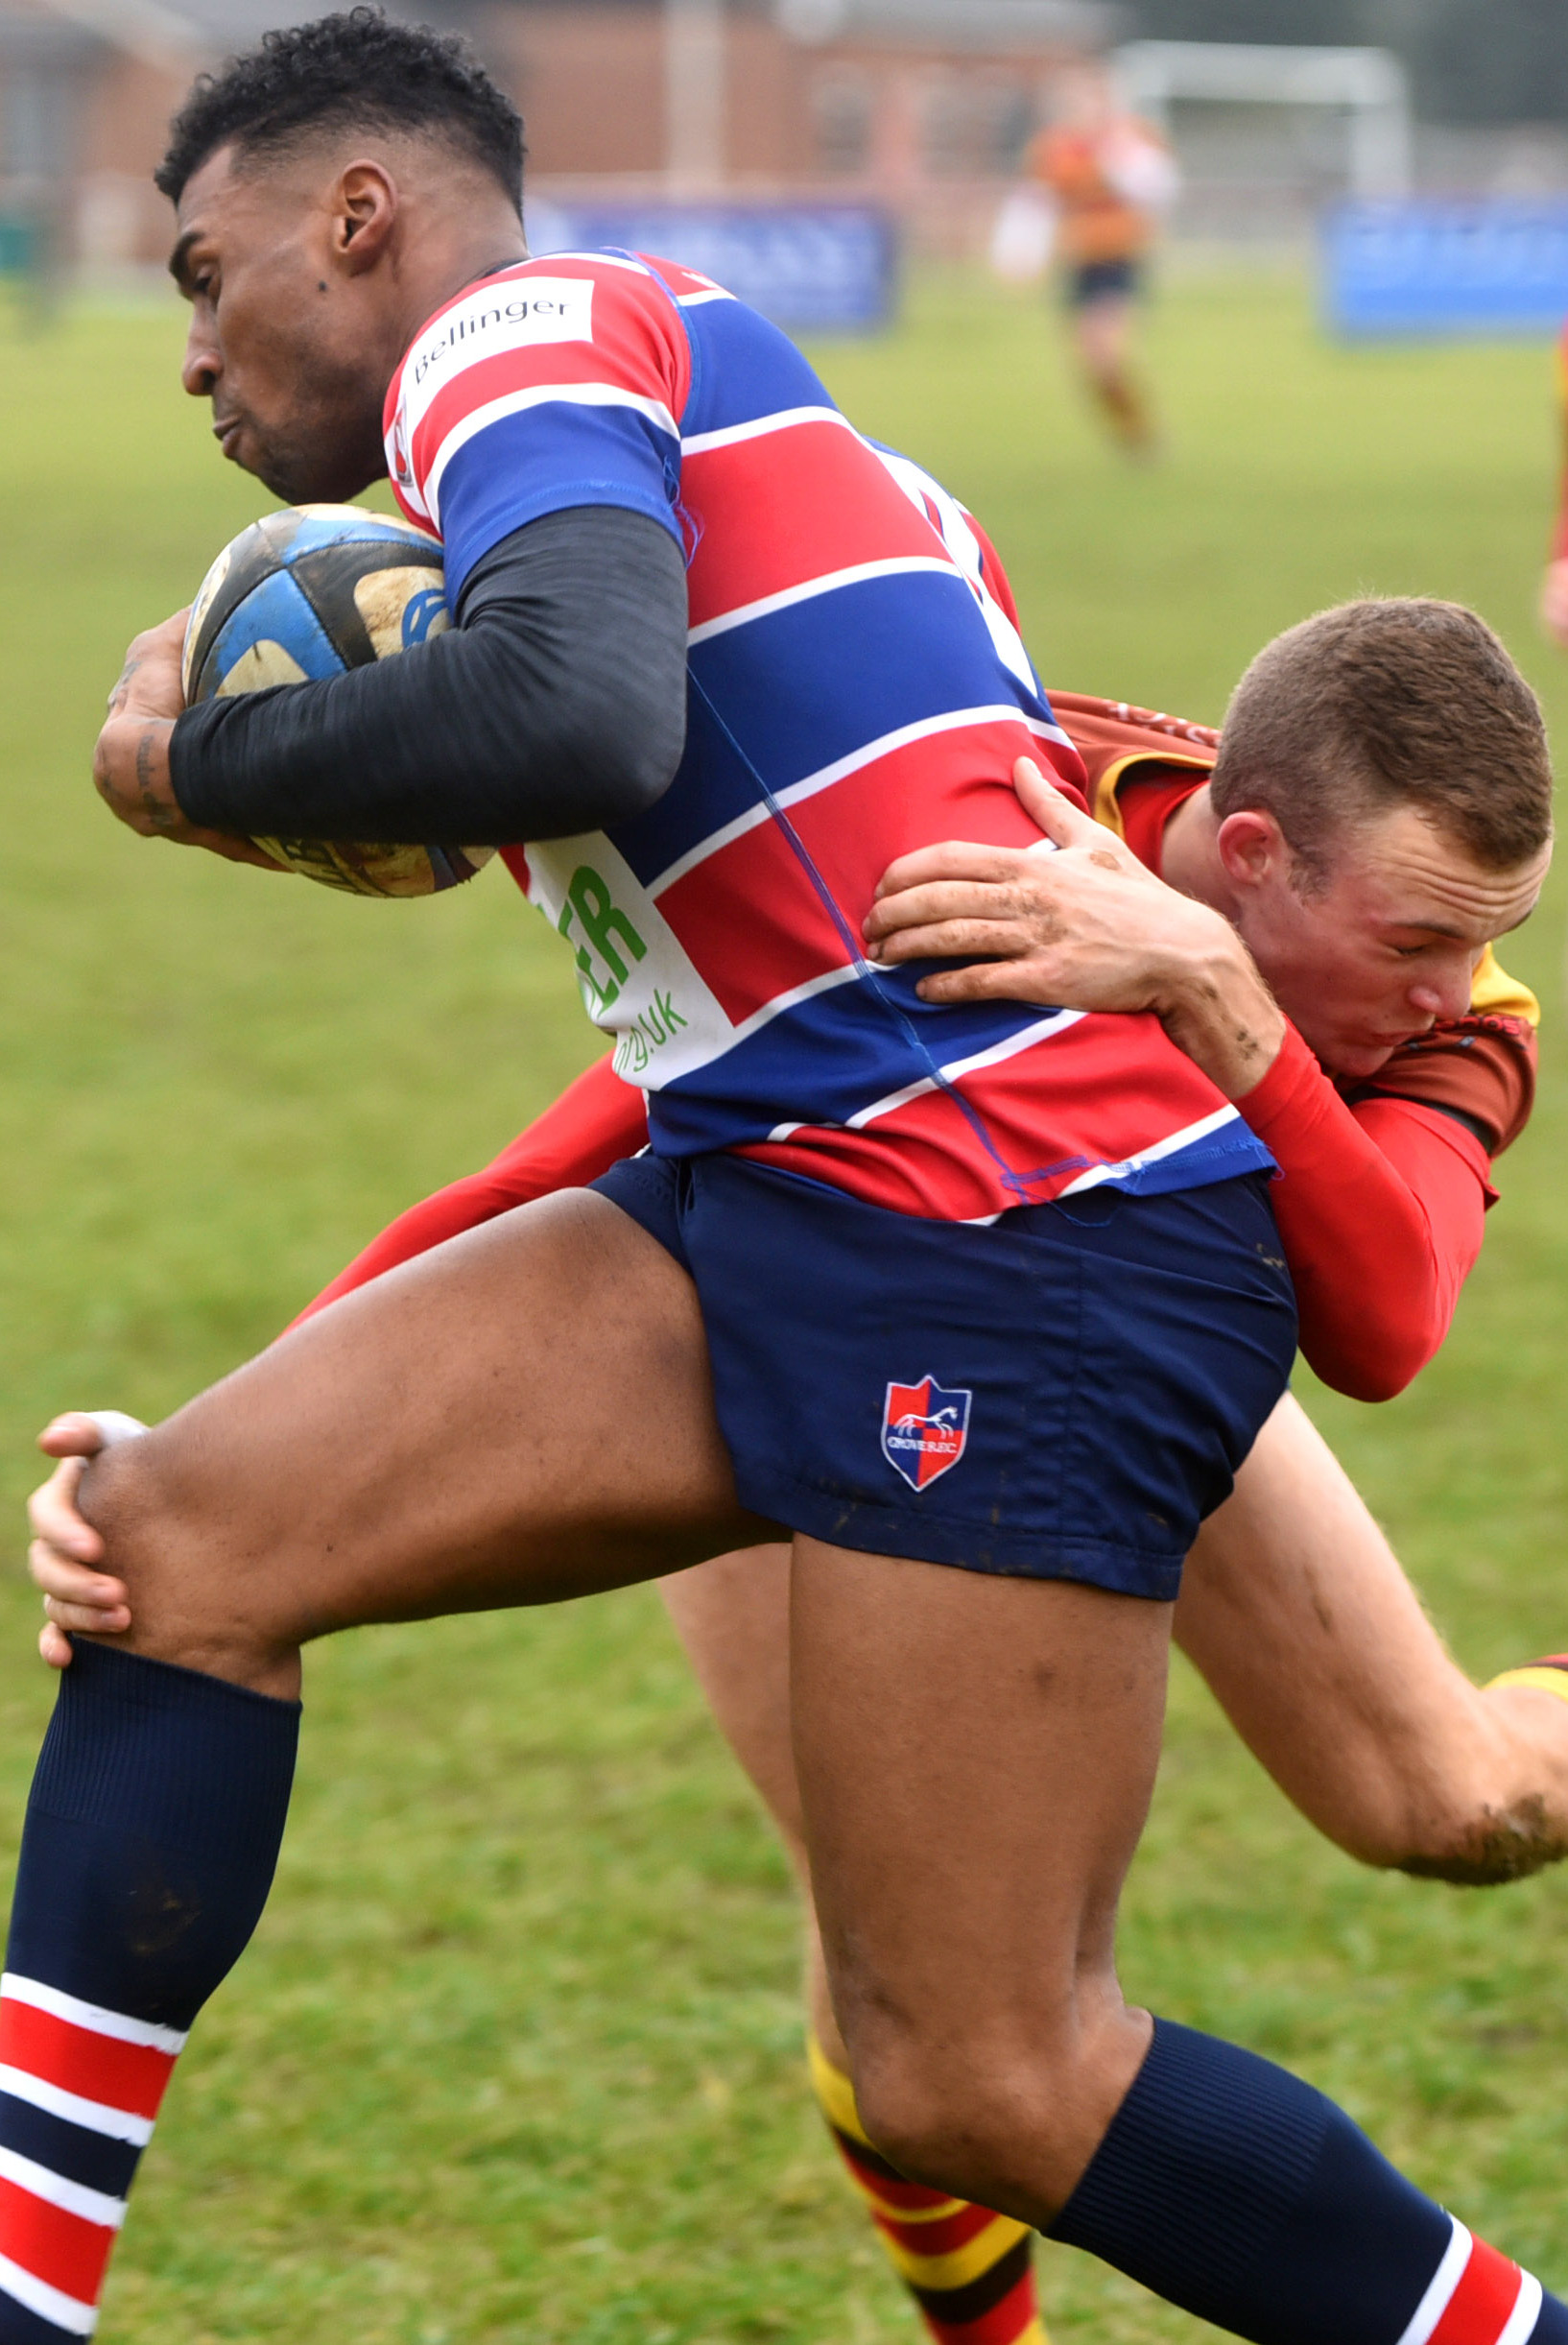 PACE: Benny Davies, who scored three tries in January, starts on the wing as Grove take on Witney at Hailey Road